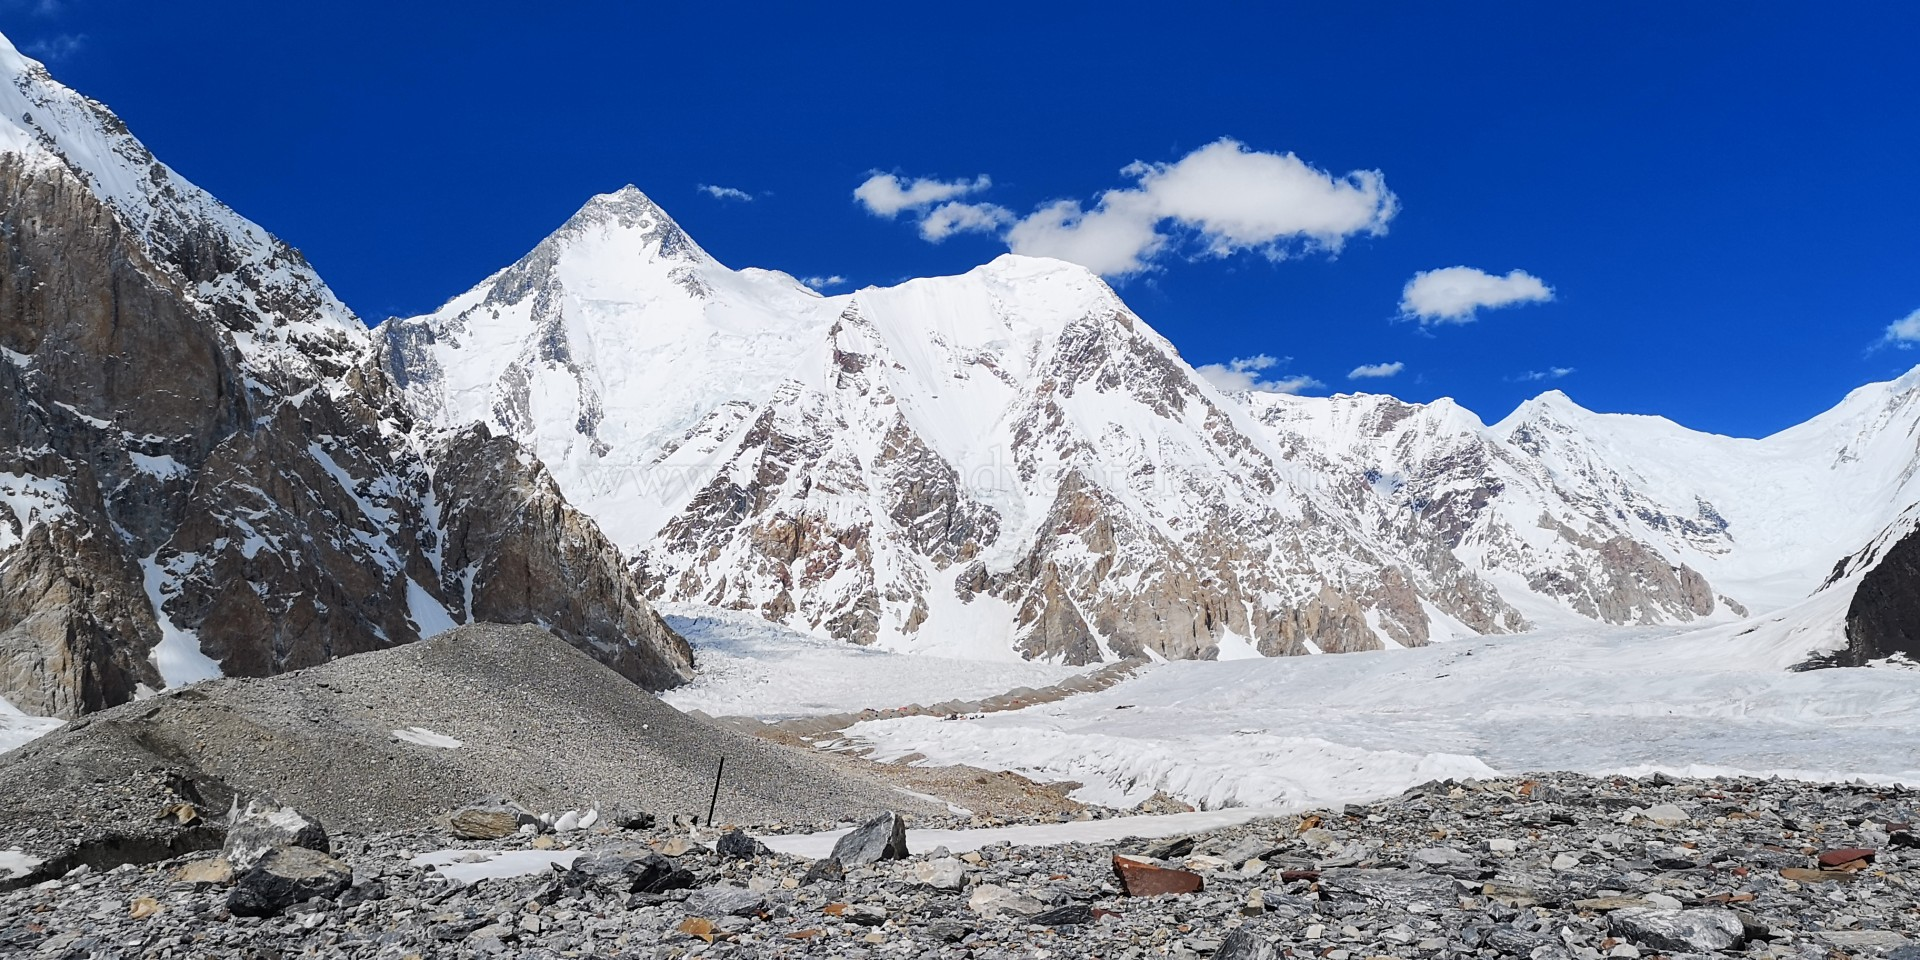 Mt. Gasherbrum I Expedition